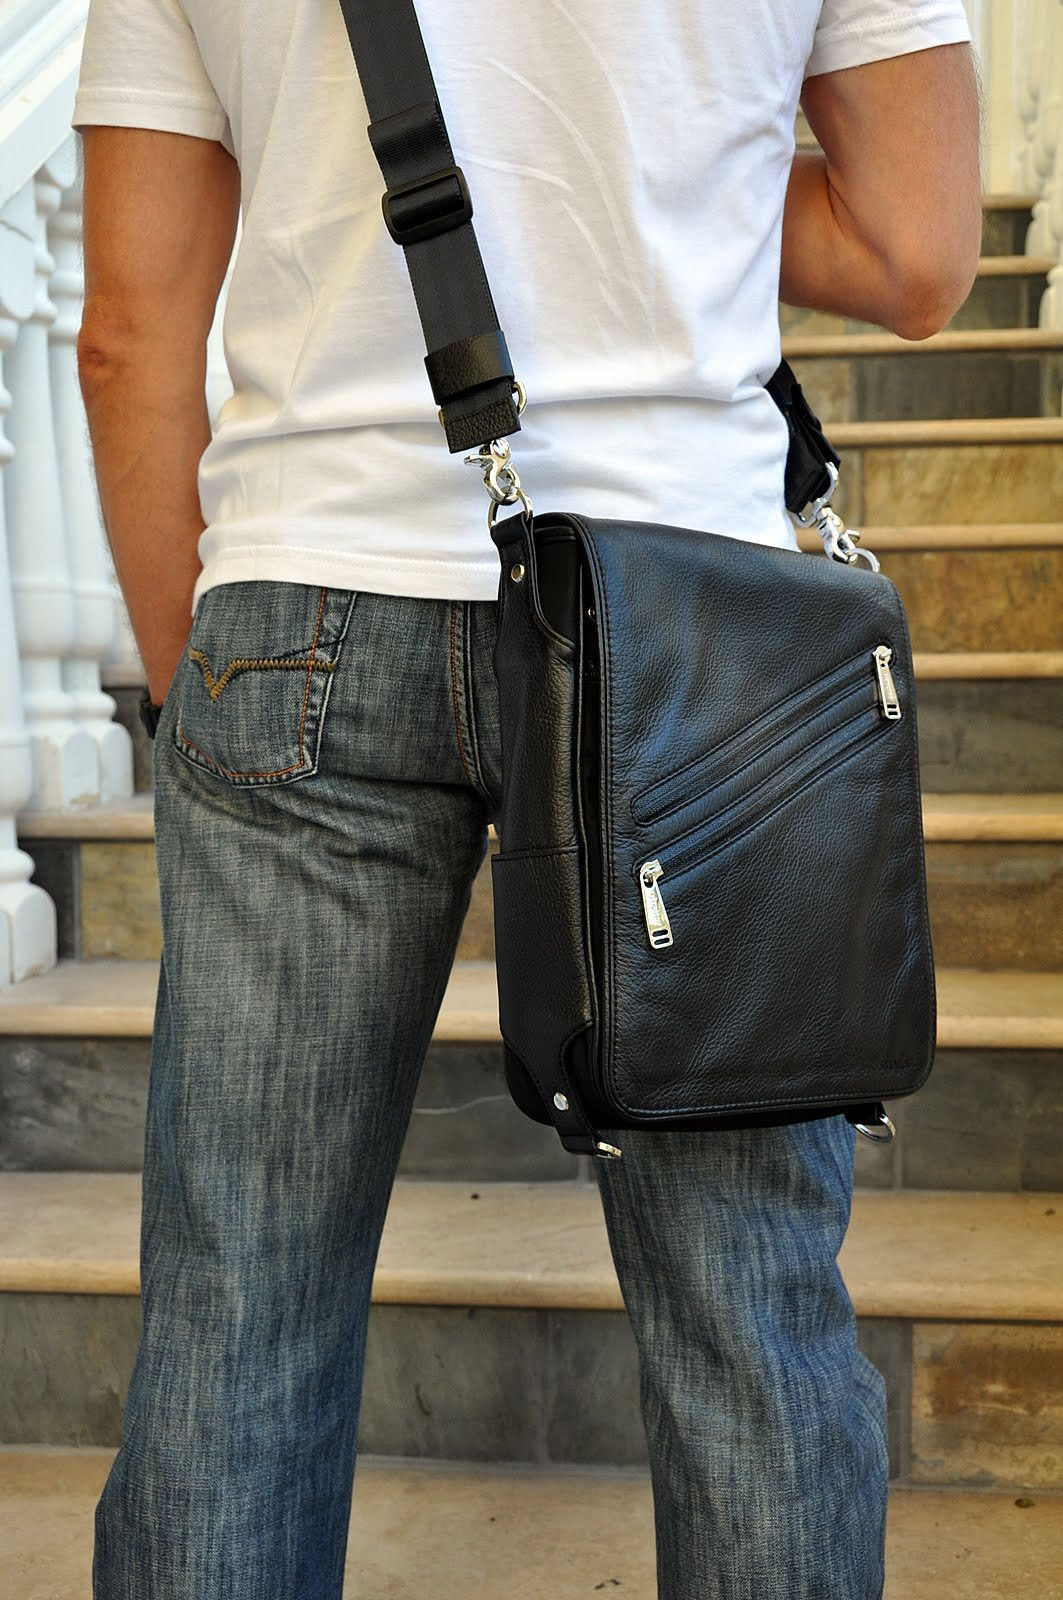 iPad messenger bag Platforma.. Shoulder bag mode.